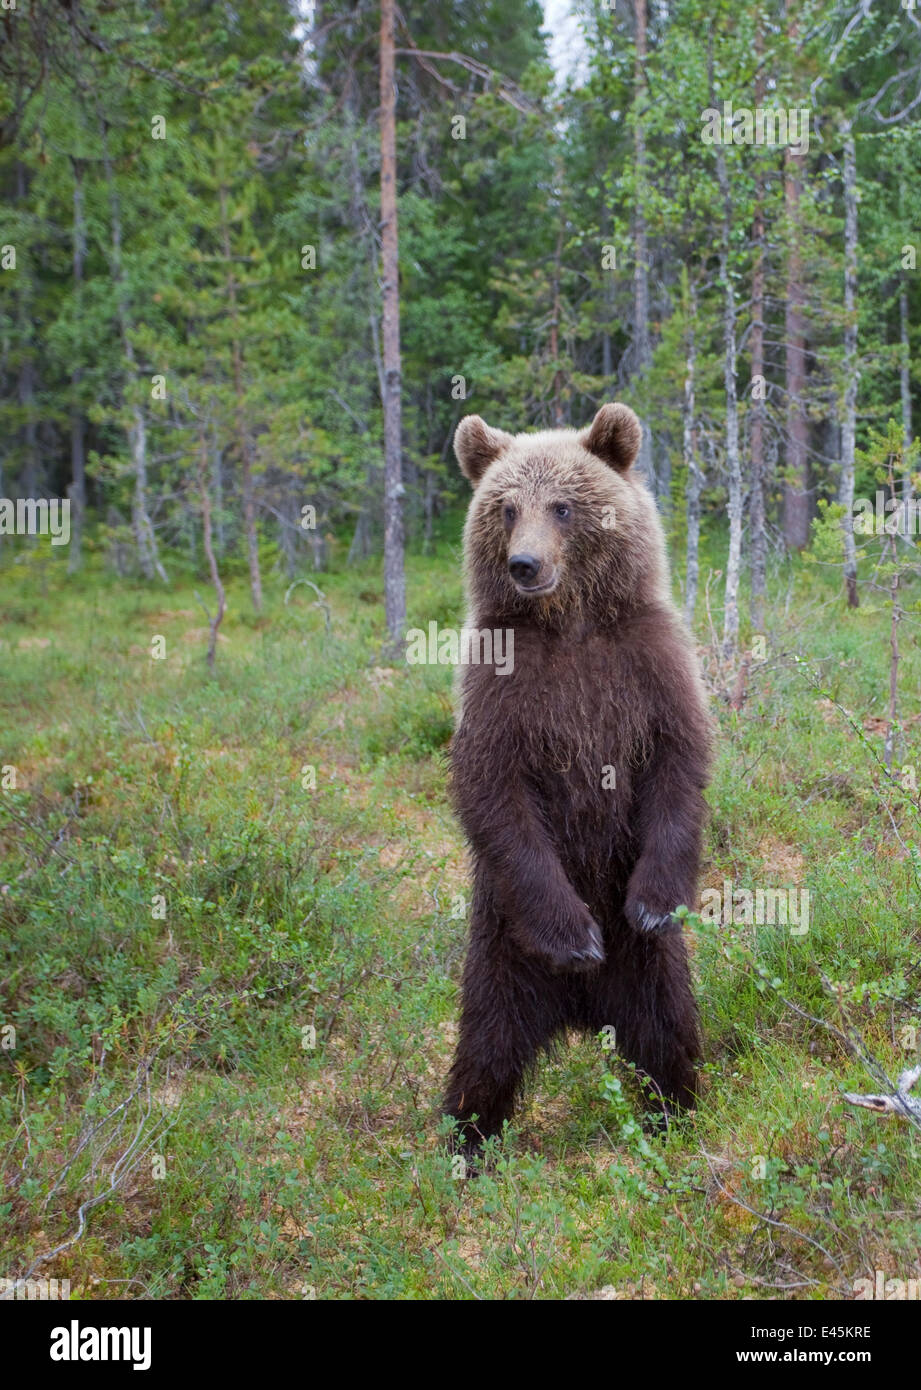 European brown bear (Ursos arctos) standing on rear legs, Kuhmo, Finland, July 2009 - Stock Image